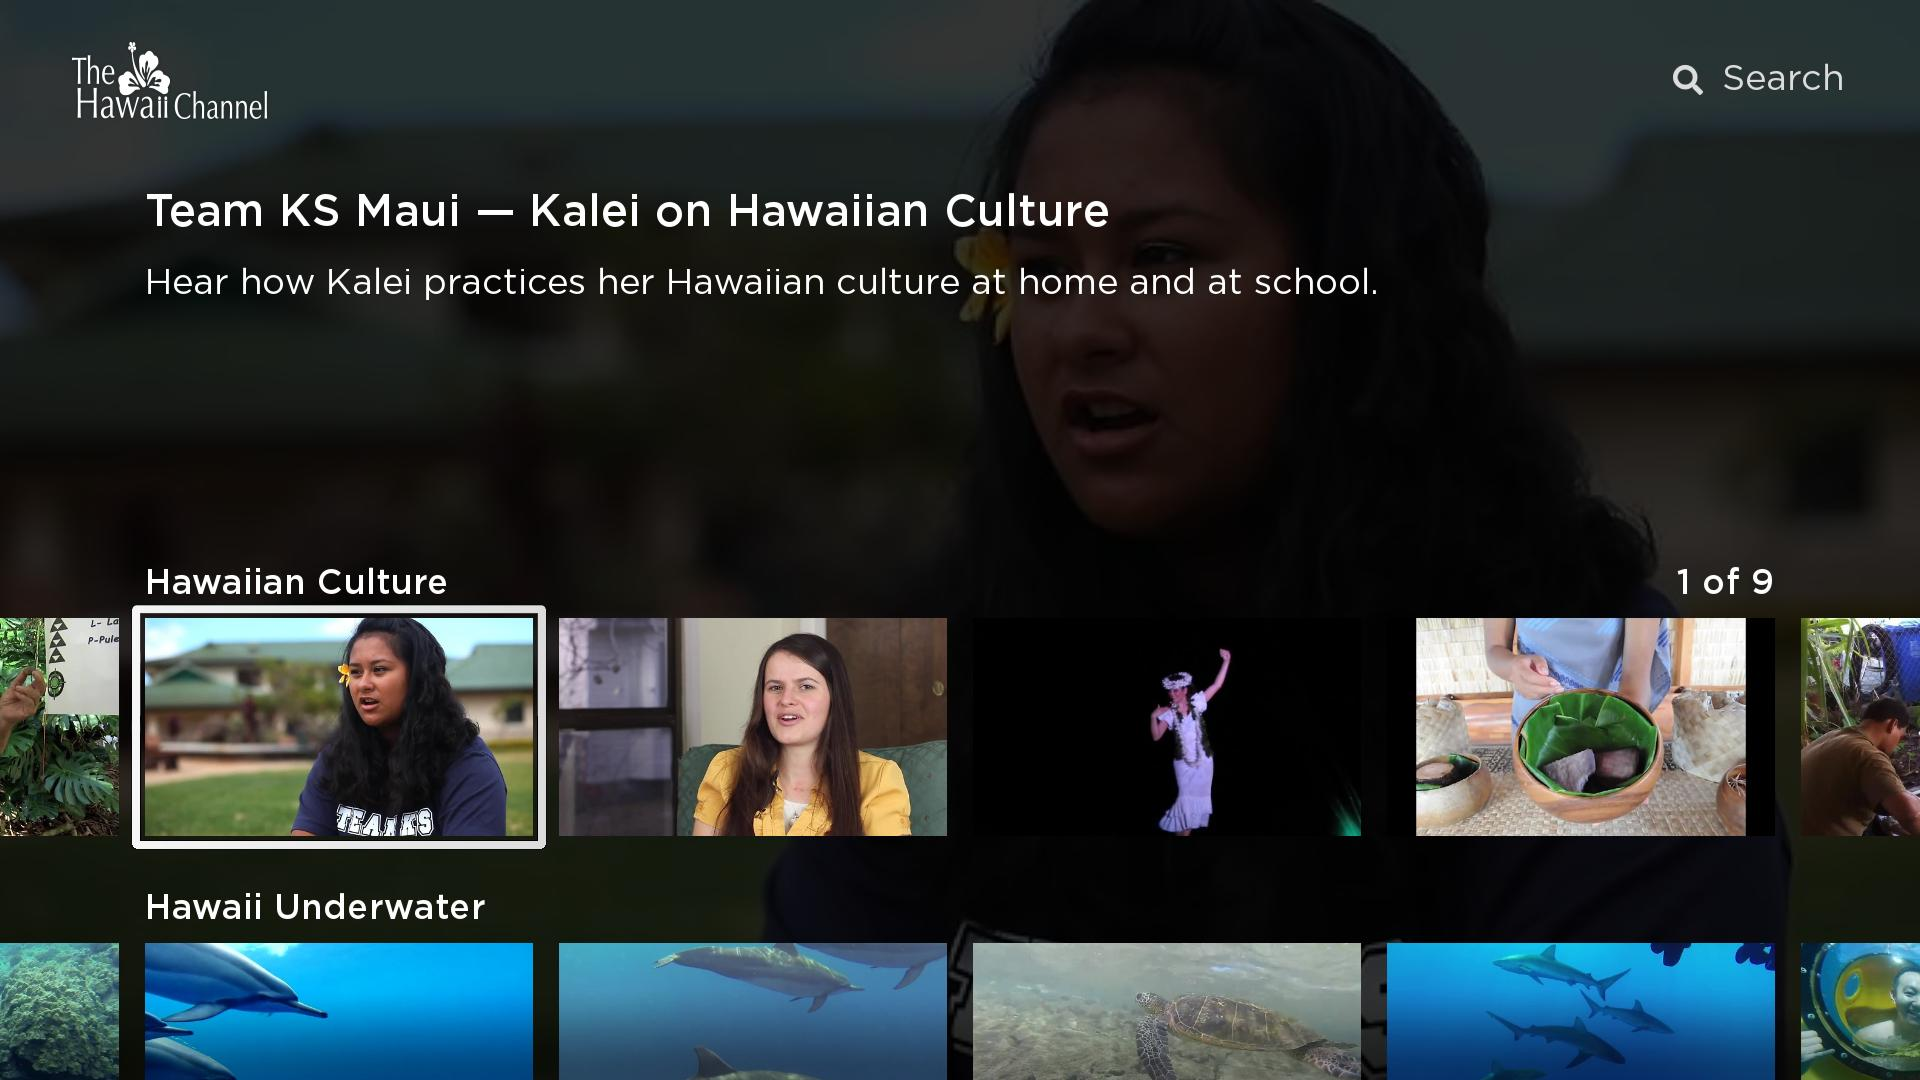 The Hawaii Channel Screenshot 001